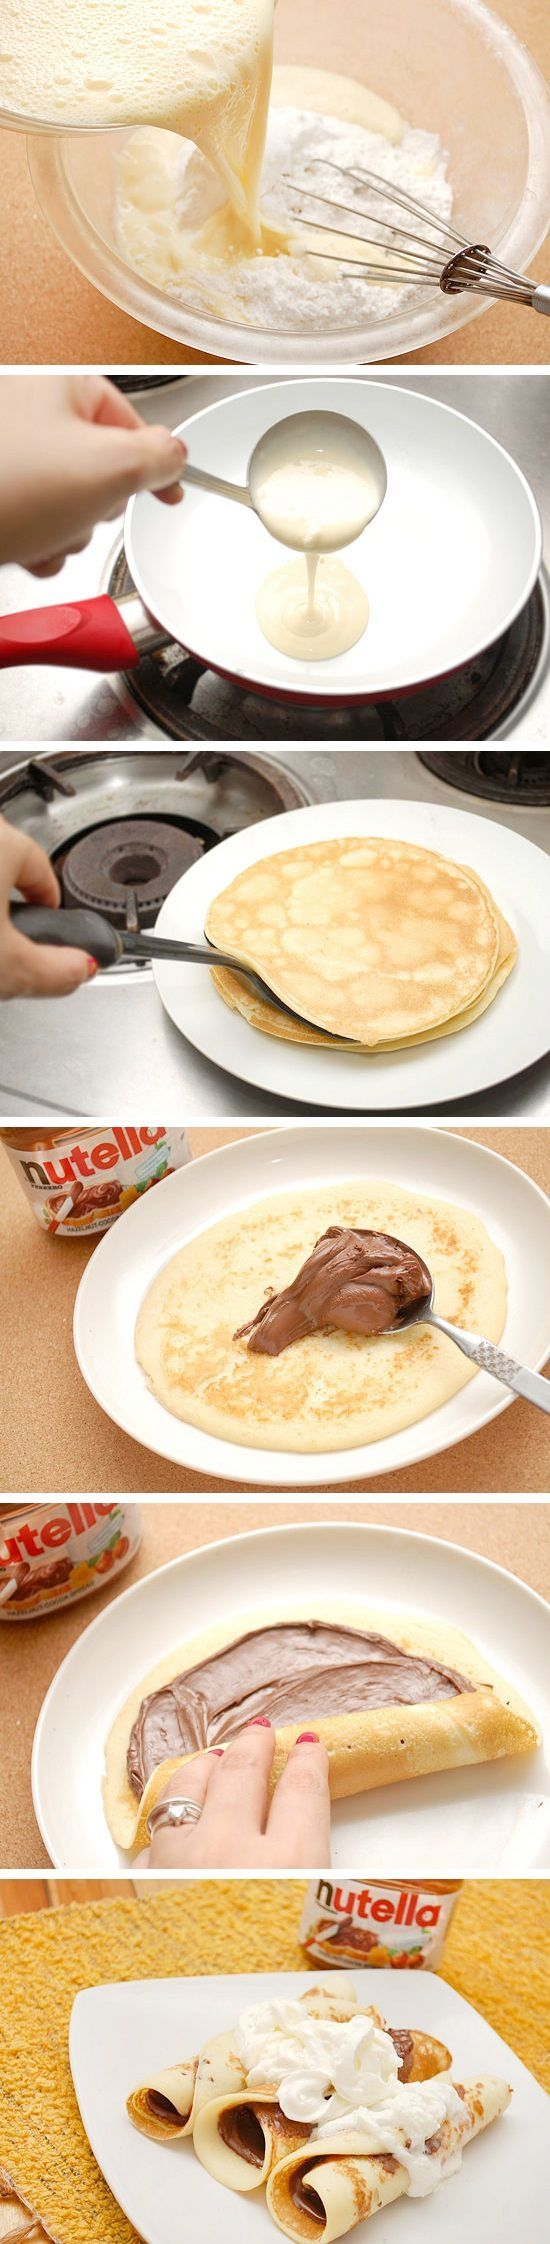 Nutella Crepes: 1+1/8 cups Flour, 1/2 tsp Baking soda, 1 tbsp Sugar, A pinch of Salt, 3 Eggs, 1+1/2 cups Milk, 1 tbsp Butter, Nutella, 1 teaspoon Vanilla, Whip Cream (to serve with)